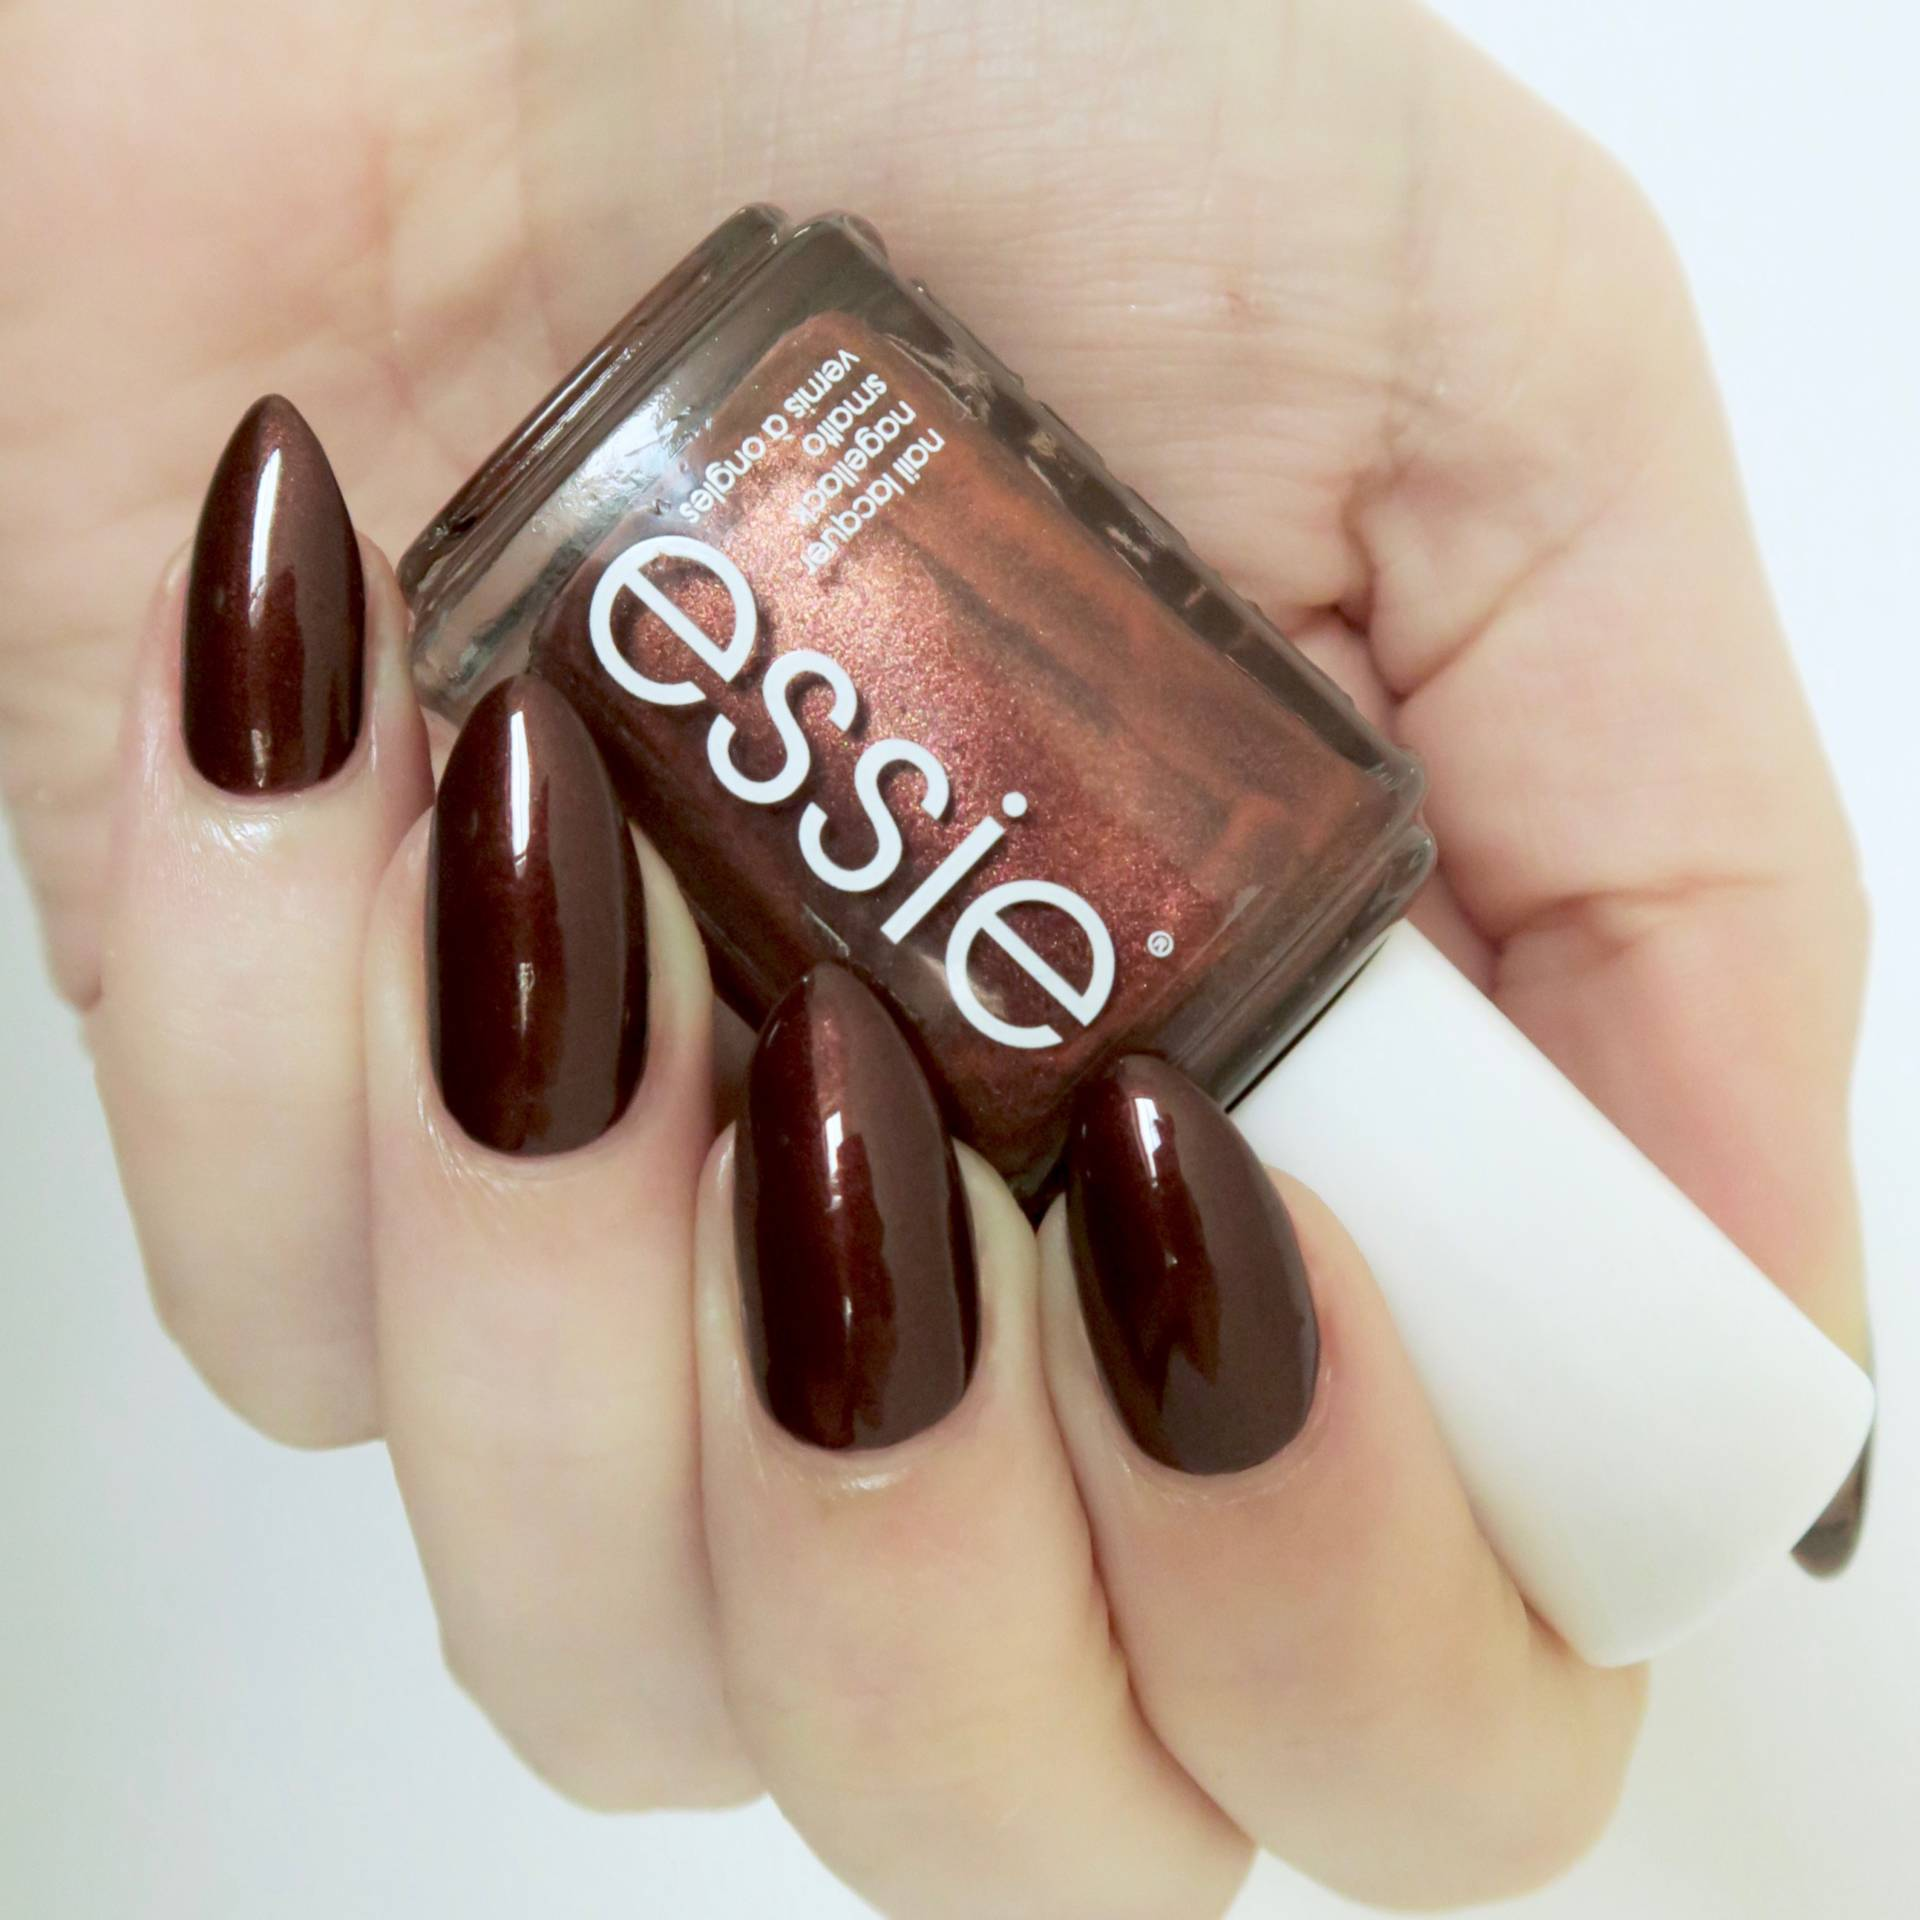 Essie Winter 2016 Collection Ready To Boa review